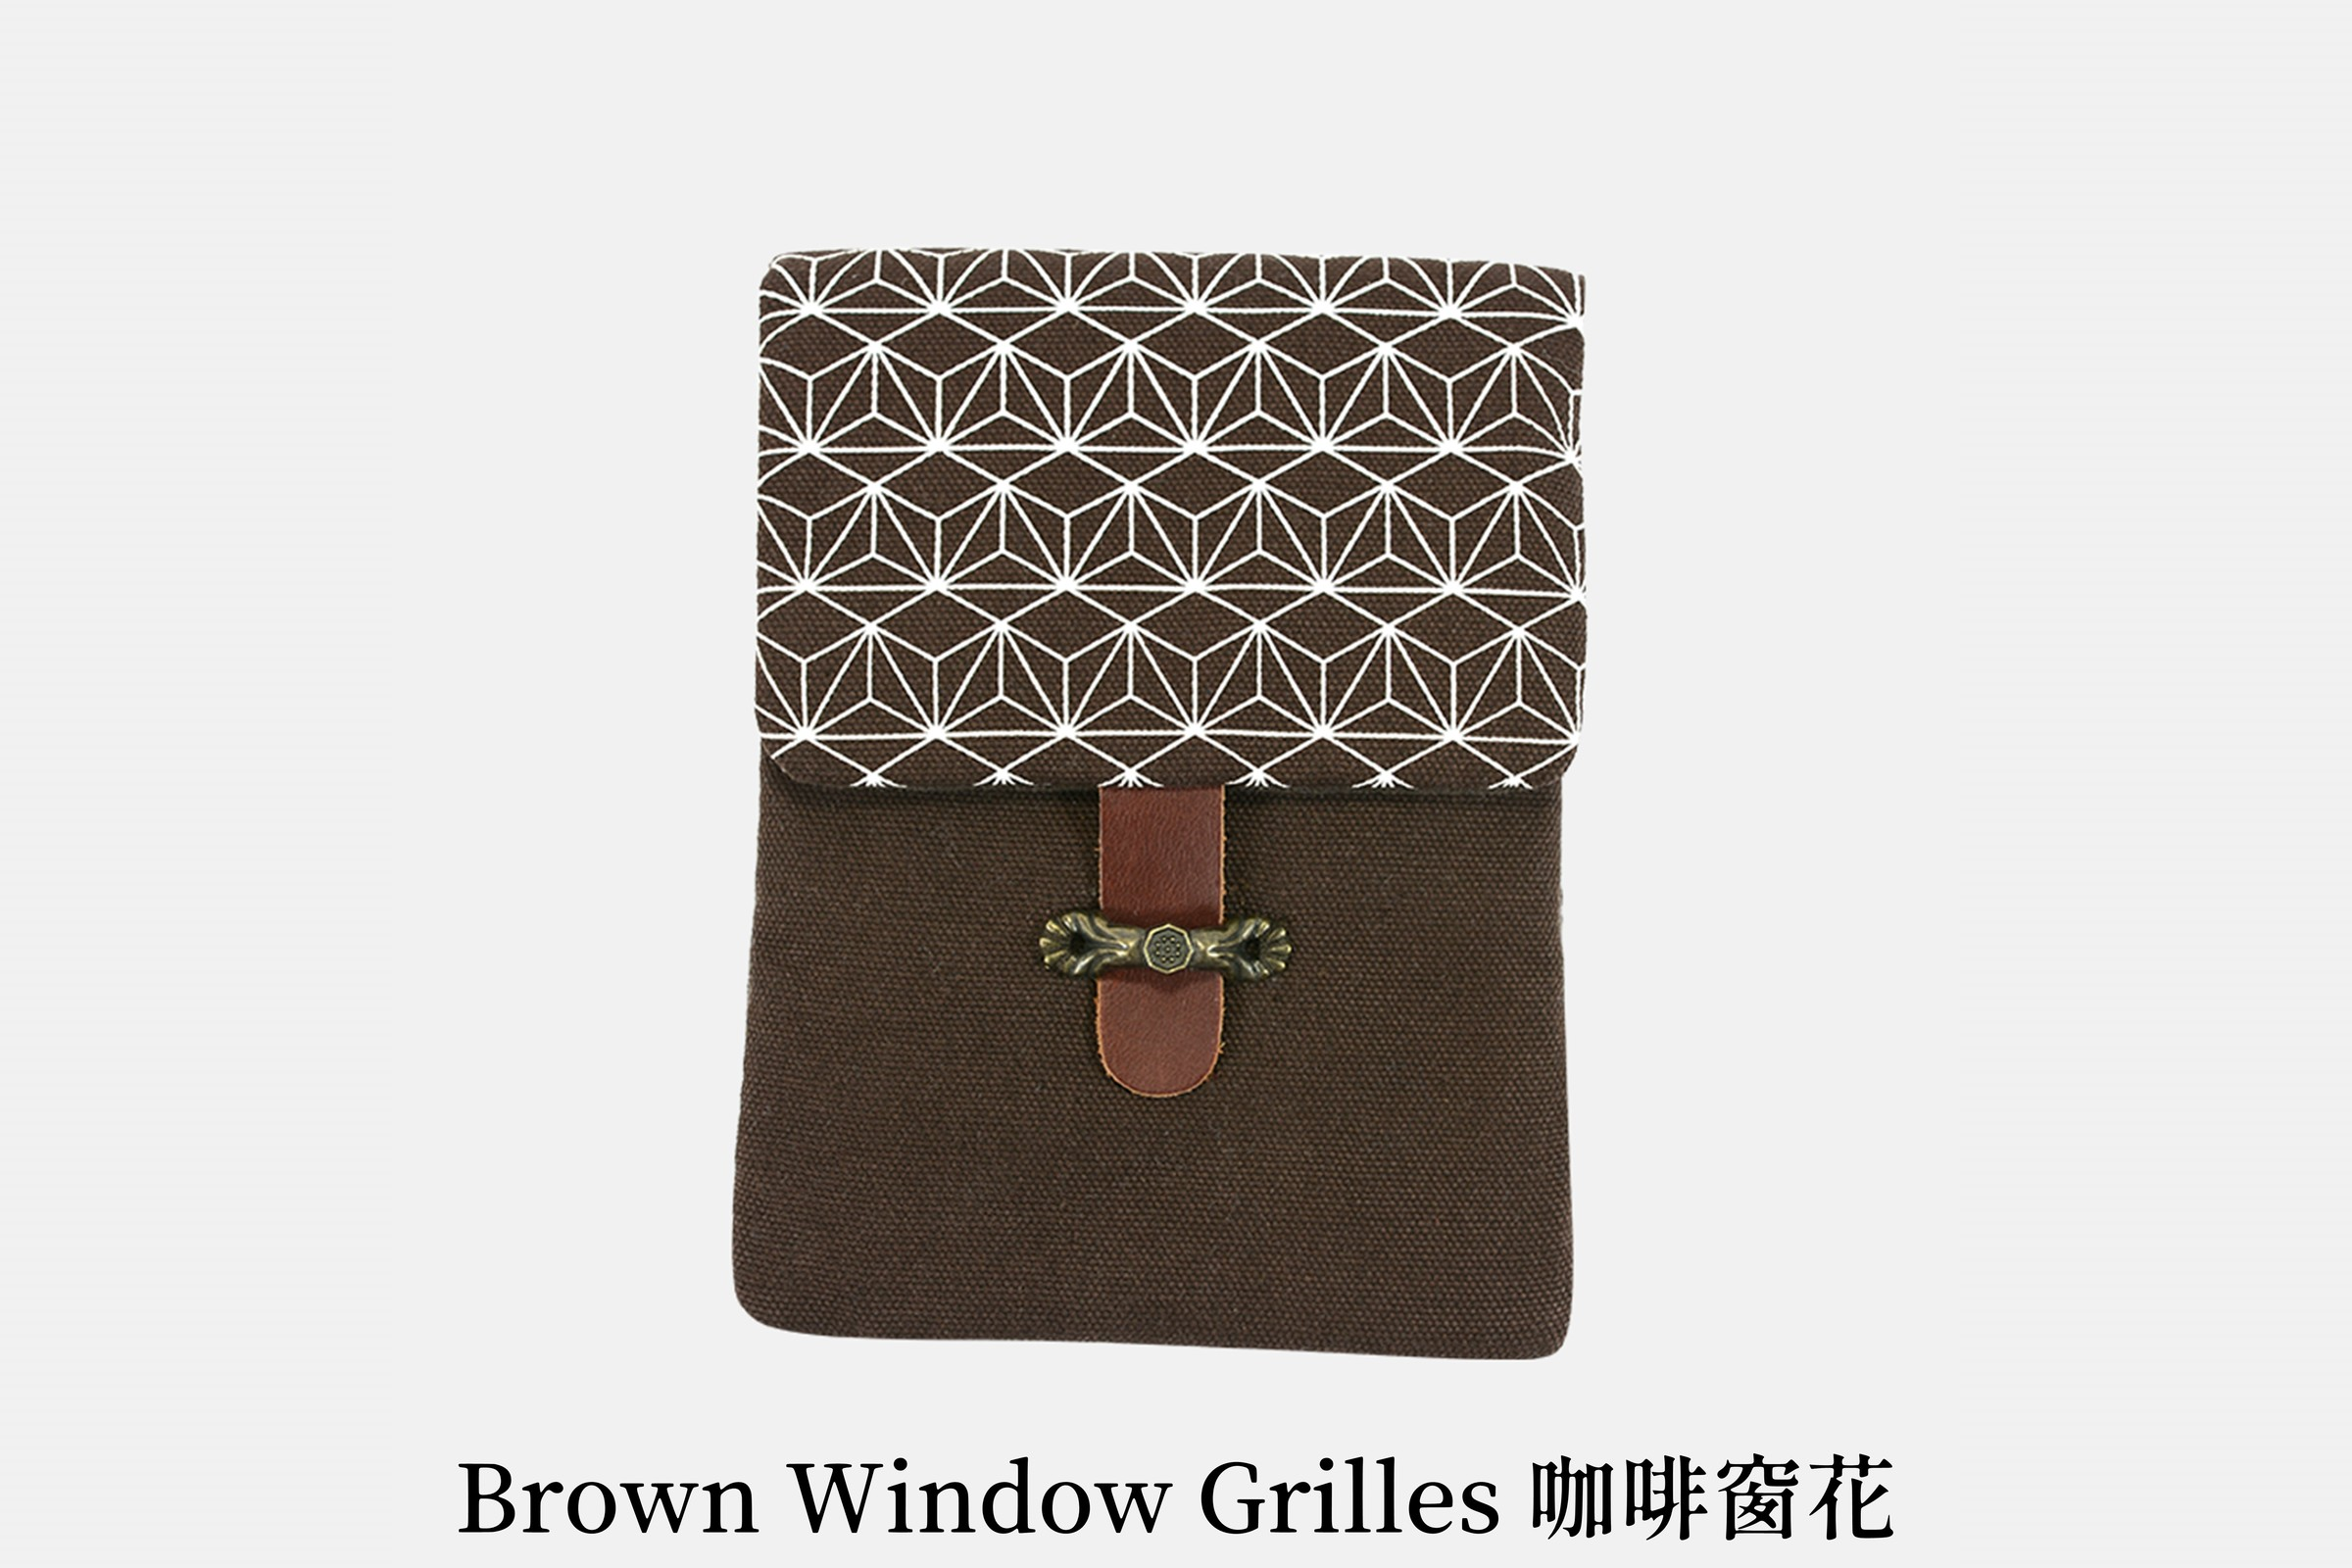 Flip-up Brown Window Grilles 咖啡窗花.jpg